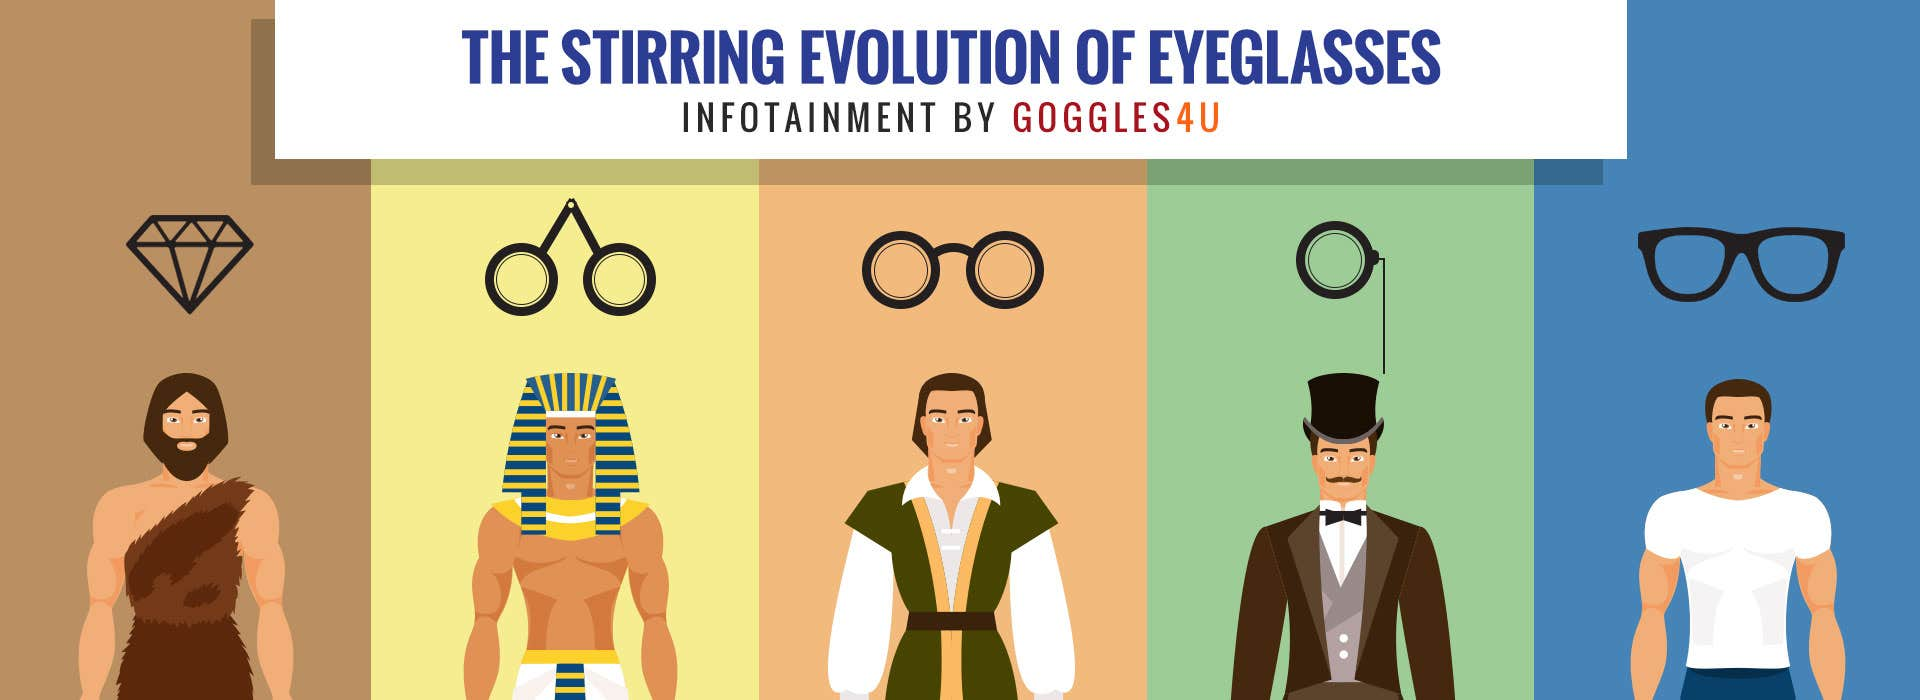 A Stirring Evolution of Eyeglasses: Infotainment By Goggles4U